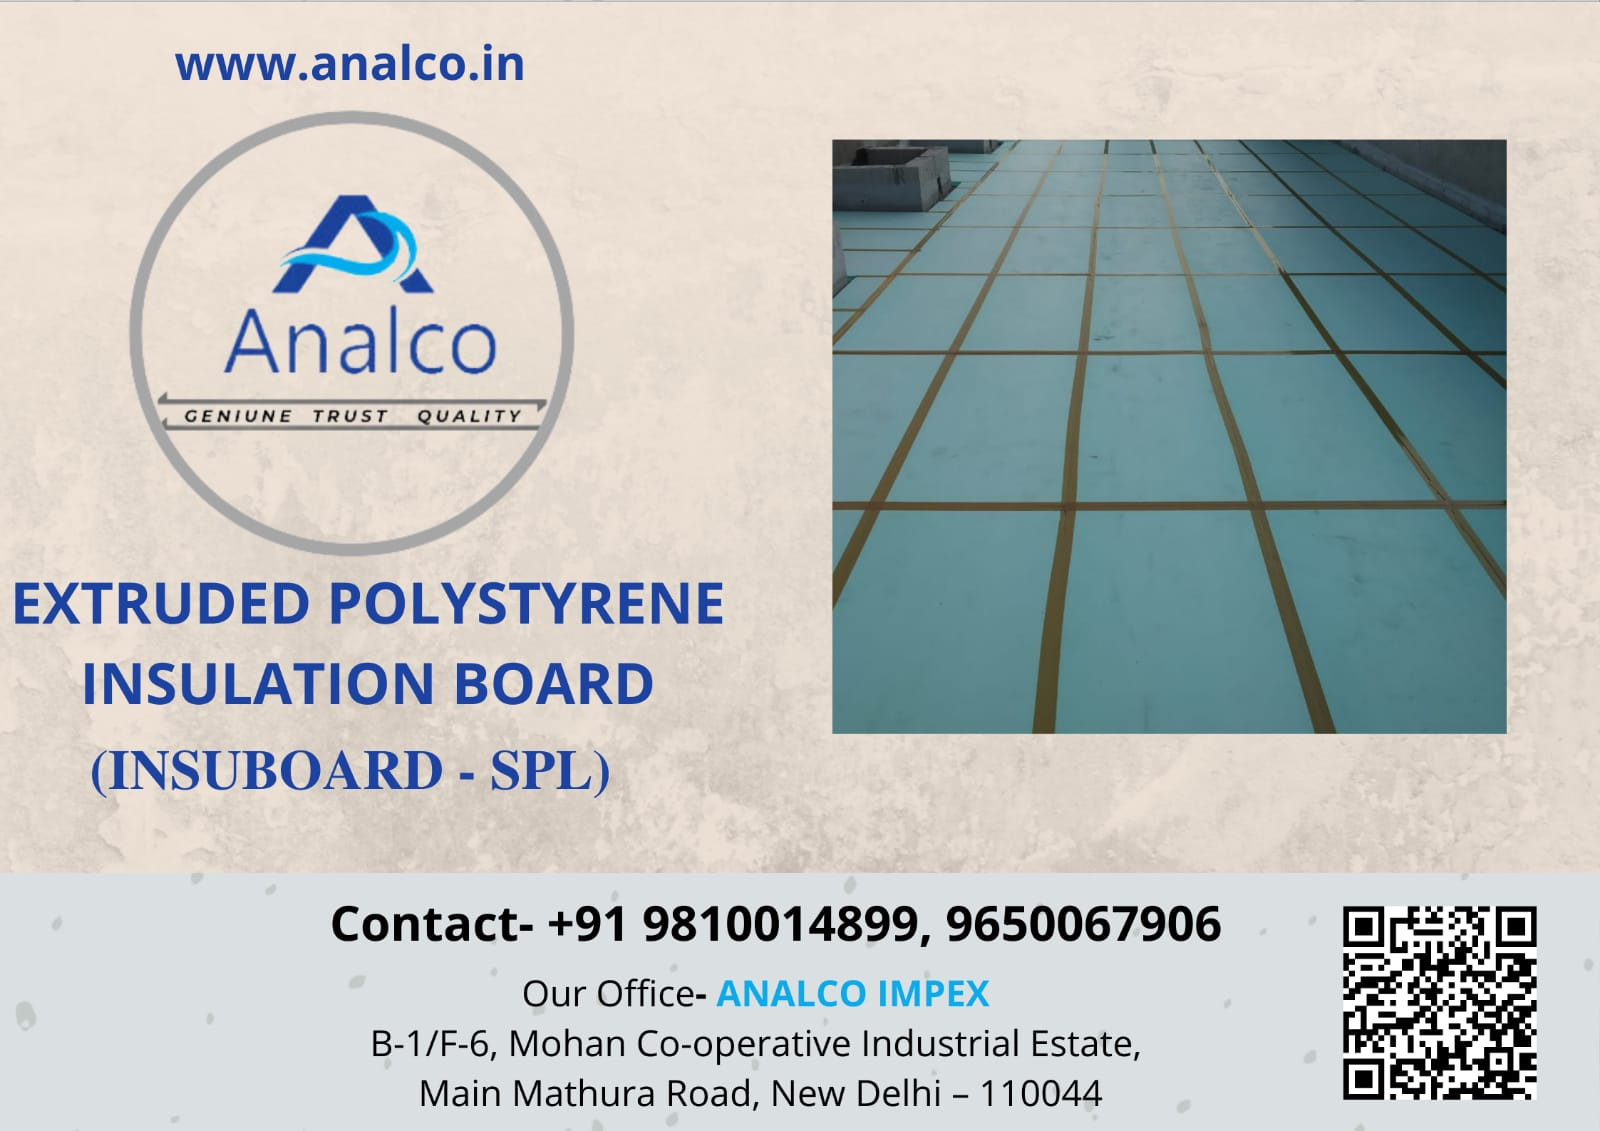 polystyrene insulation board manufacturers and suppliers, extruded polystyrene foam- XPS board service provider, insulation and foam board distributors and suppliers in India